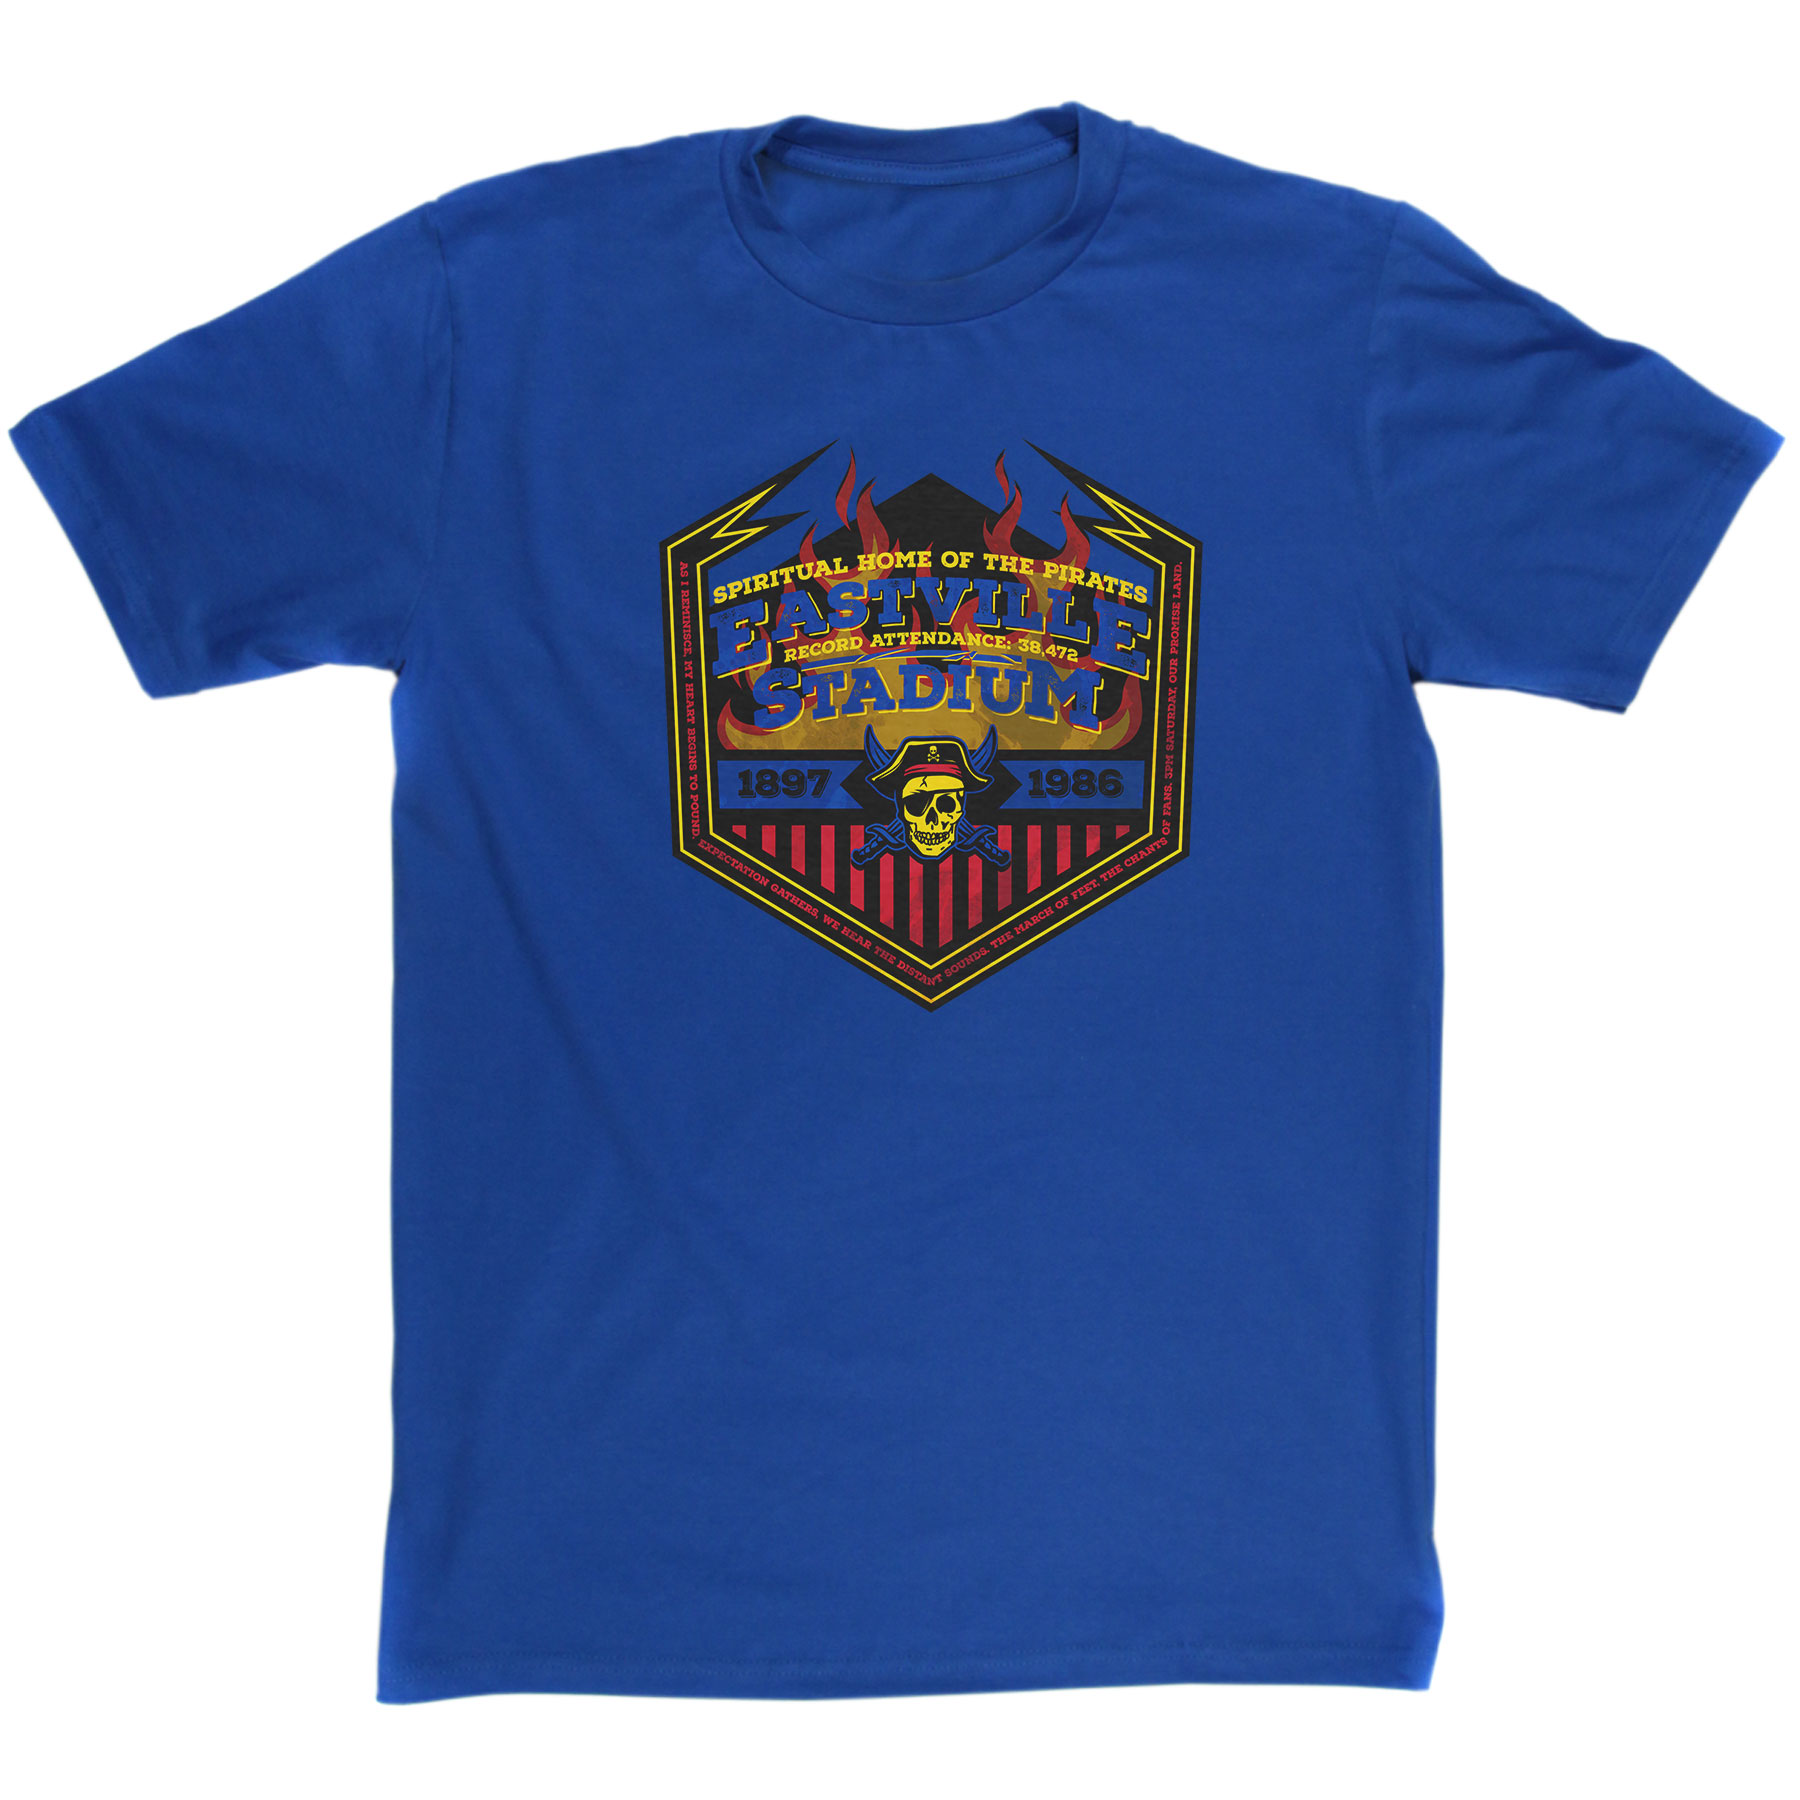 Eastville Stadium T-Shirt